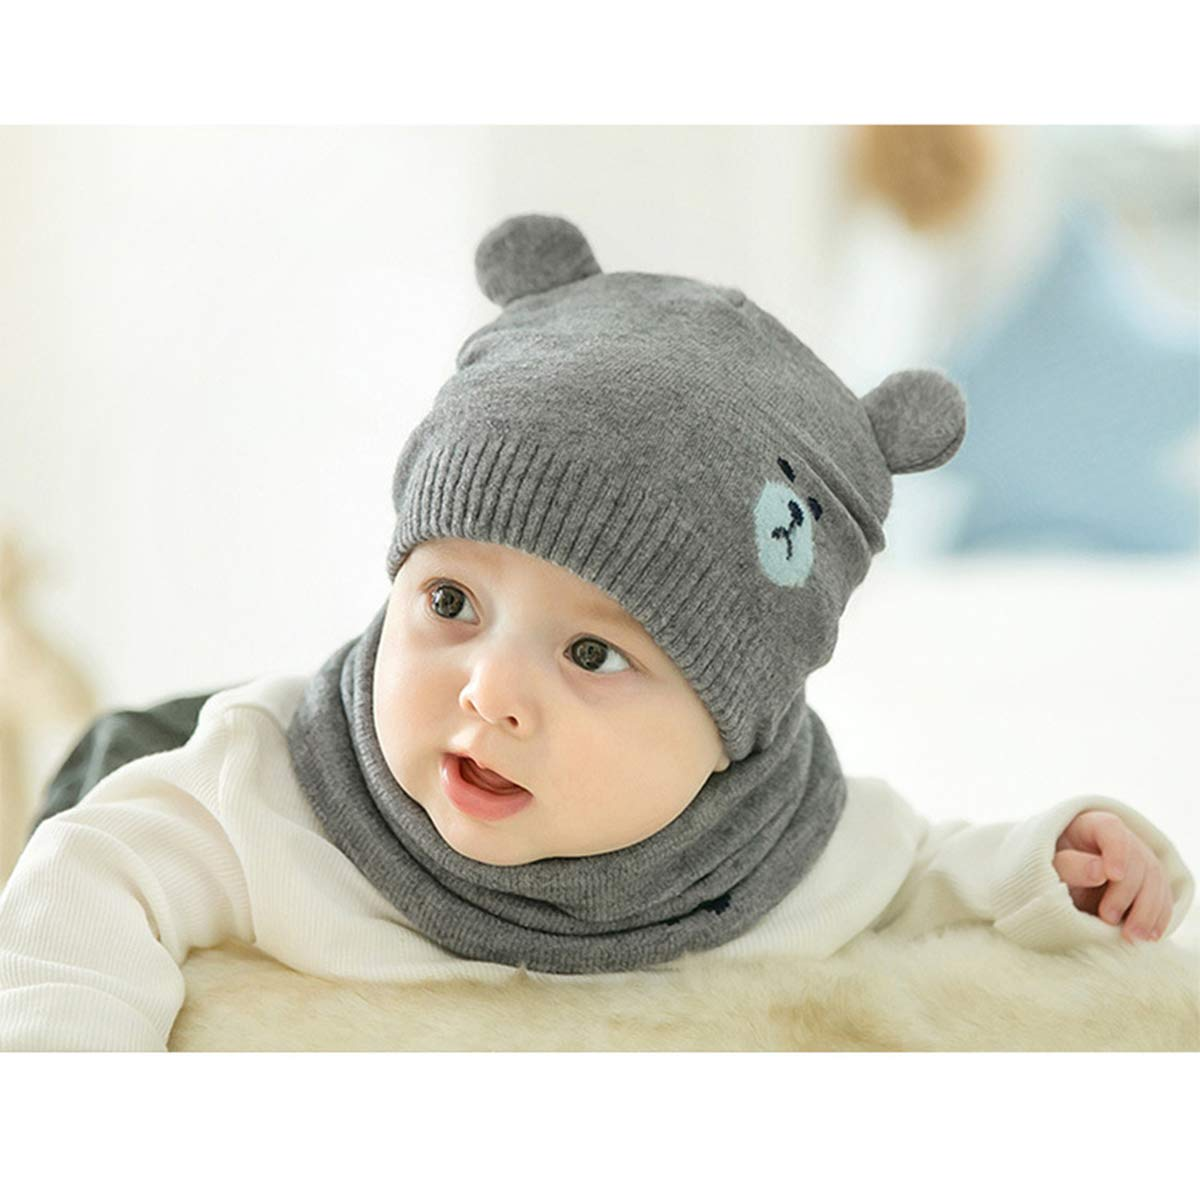 bd5f422f cjixnji Baby Boy Girl Cute Baby Winter Hats Scarfs Set, Children Toddler  Warm Beanie Hat Knit Soft Cotton Caps Scarves for Infant Kids 0-36 Months  Children ...